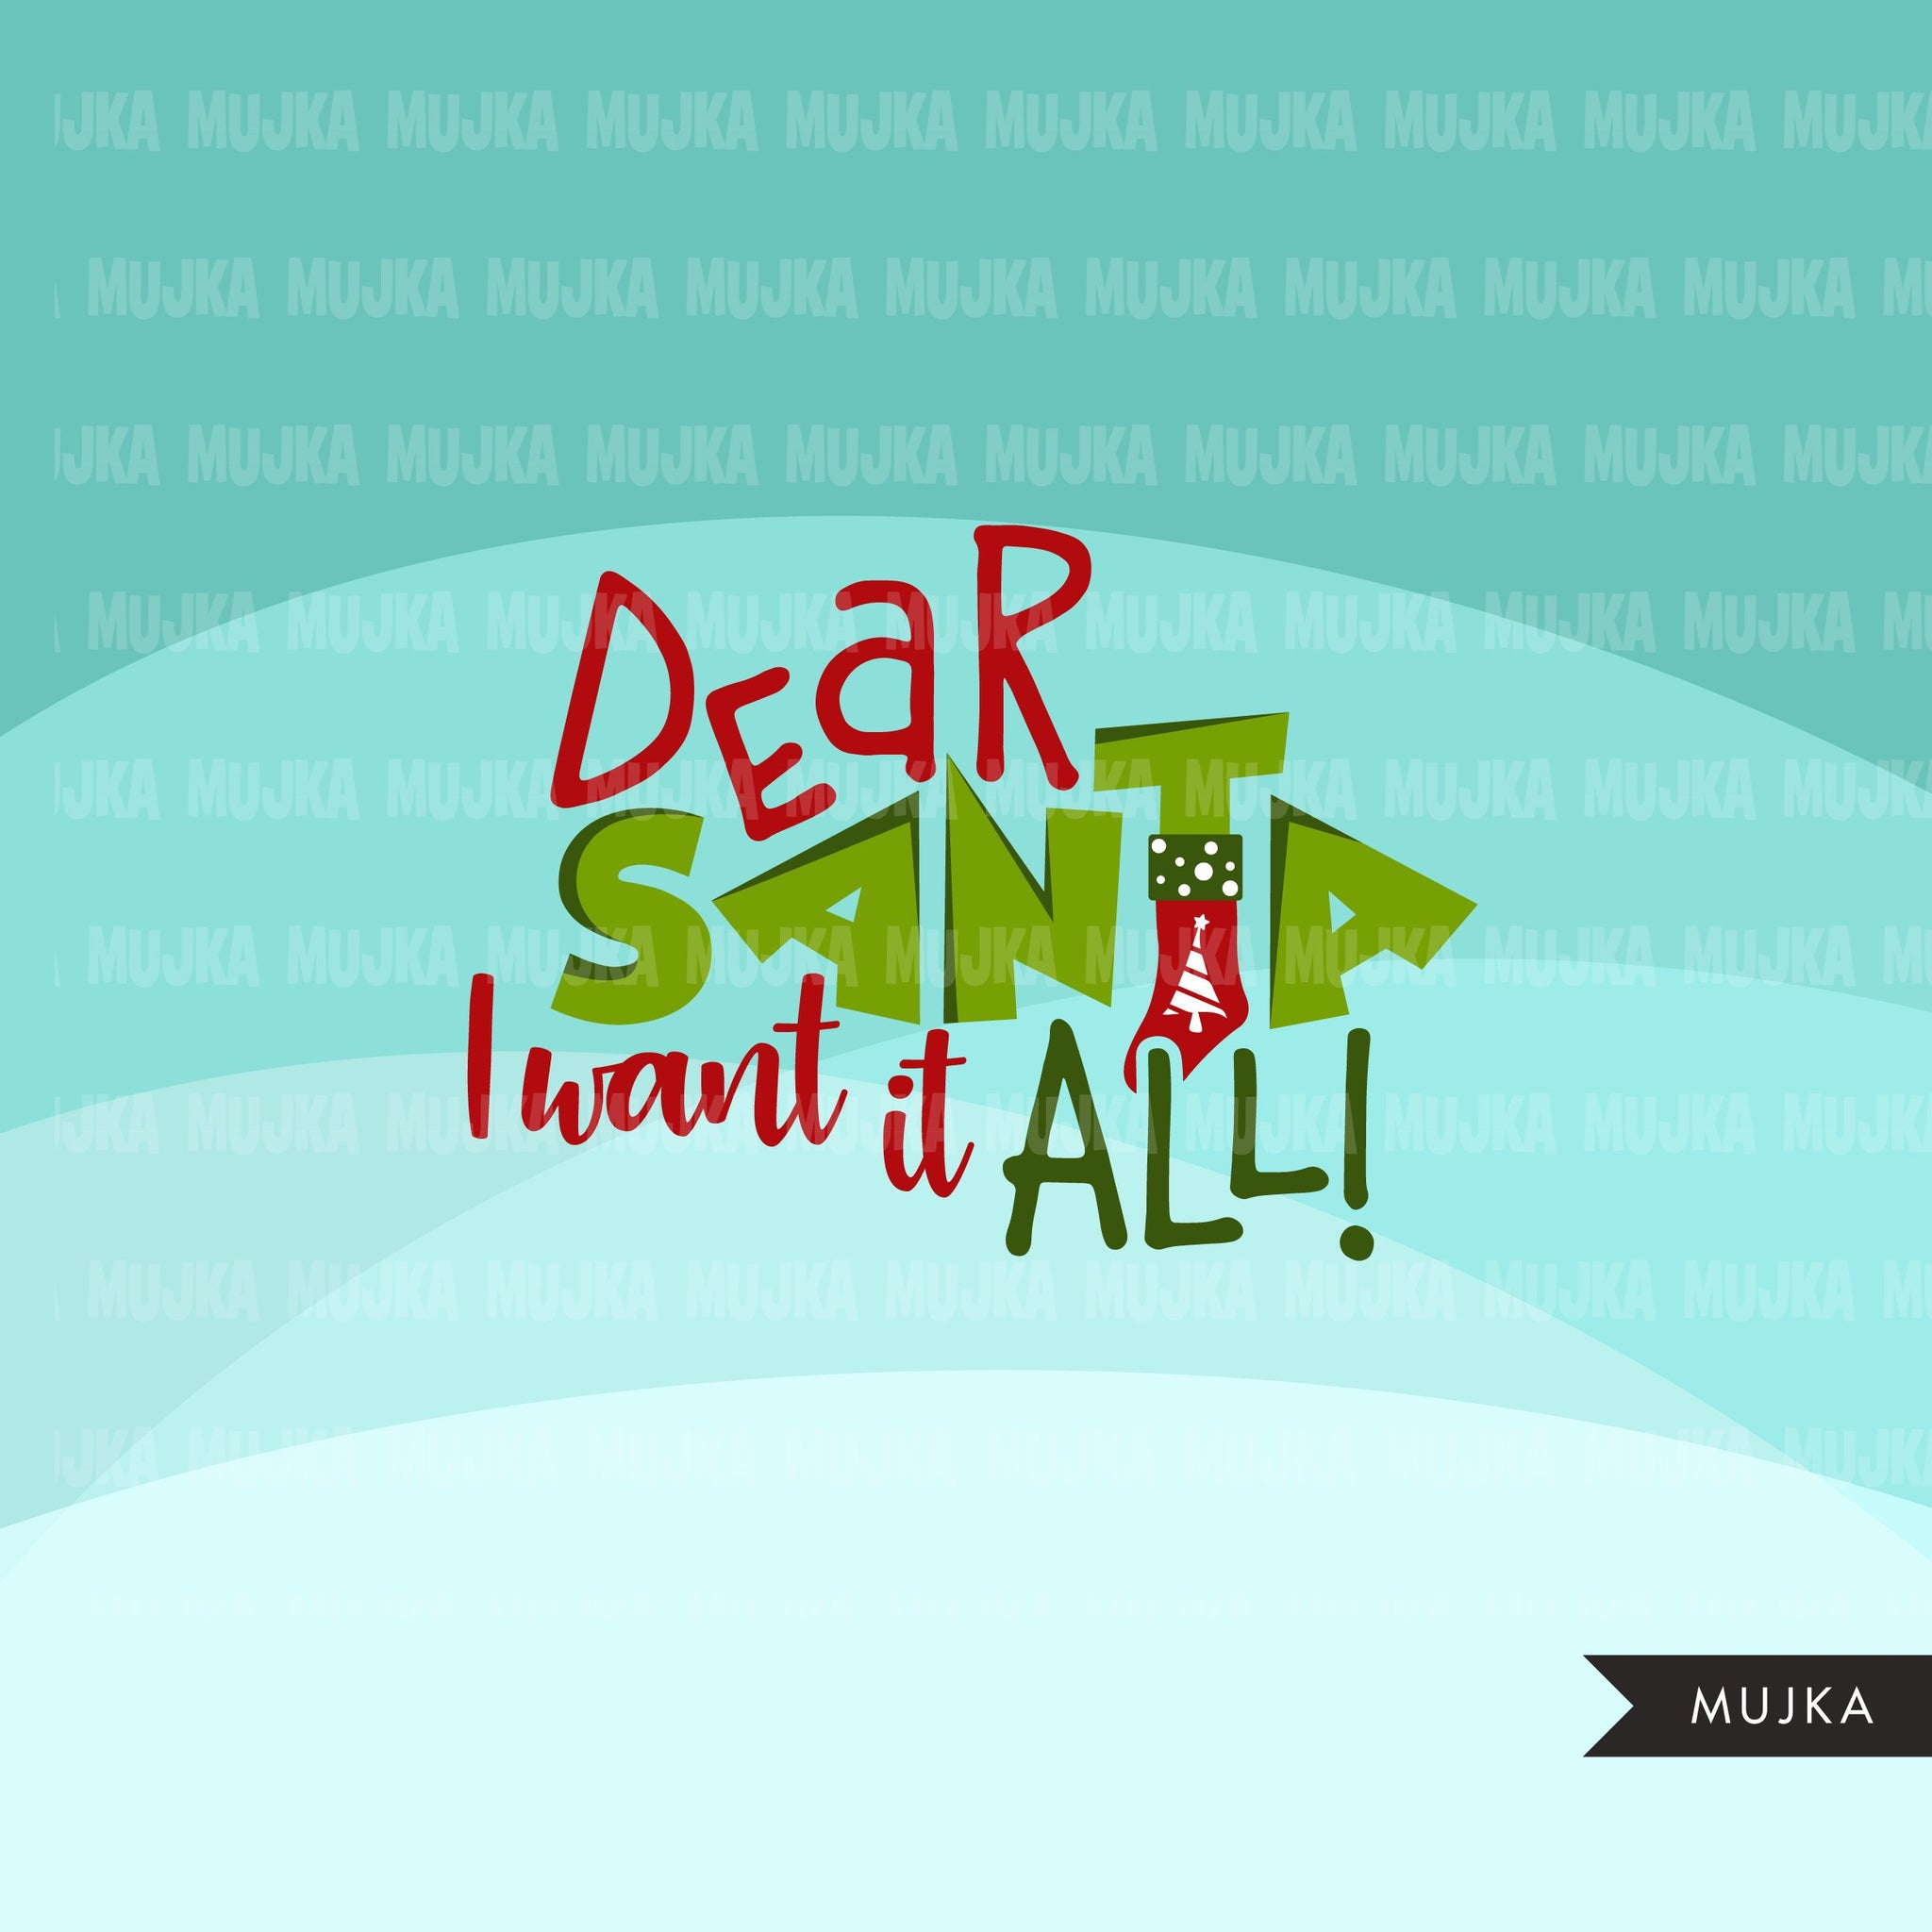 Christmas Quotes Svg Png digital, Vinyl HTV sublimation image transfer clipart, t-shirt graphics